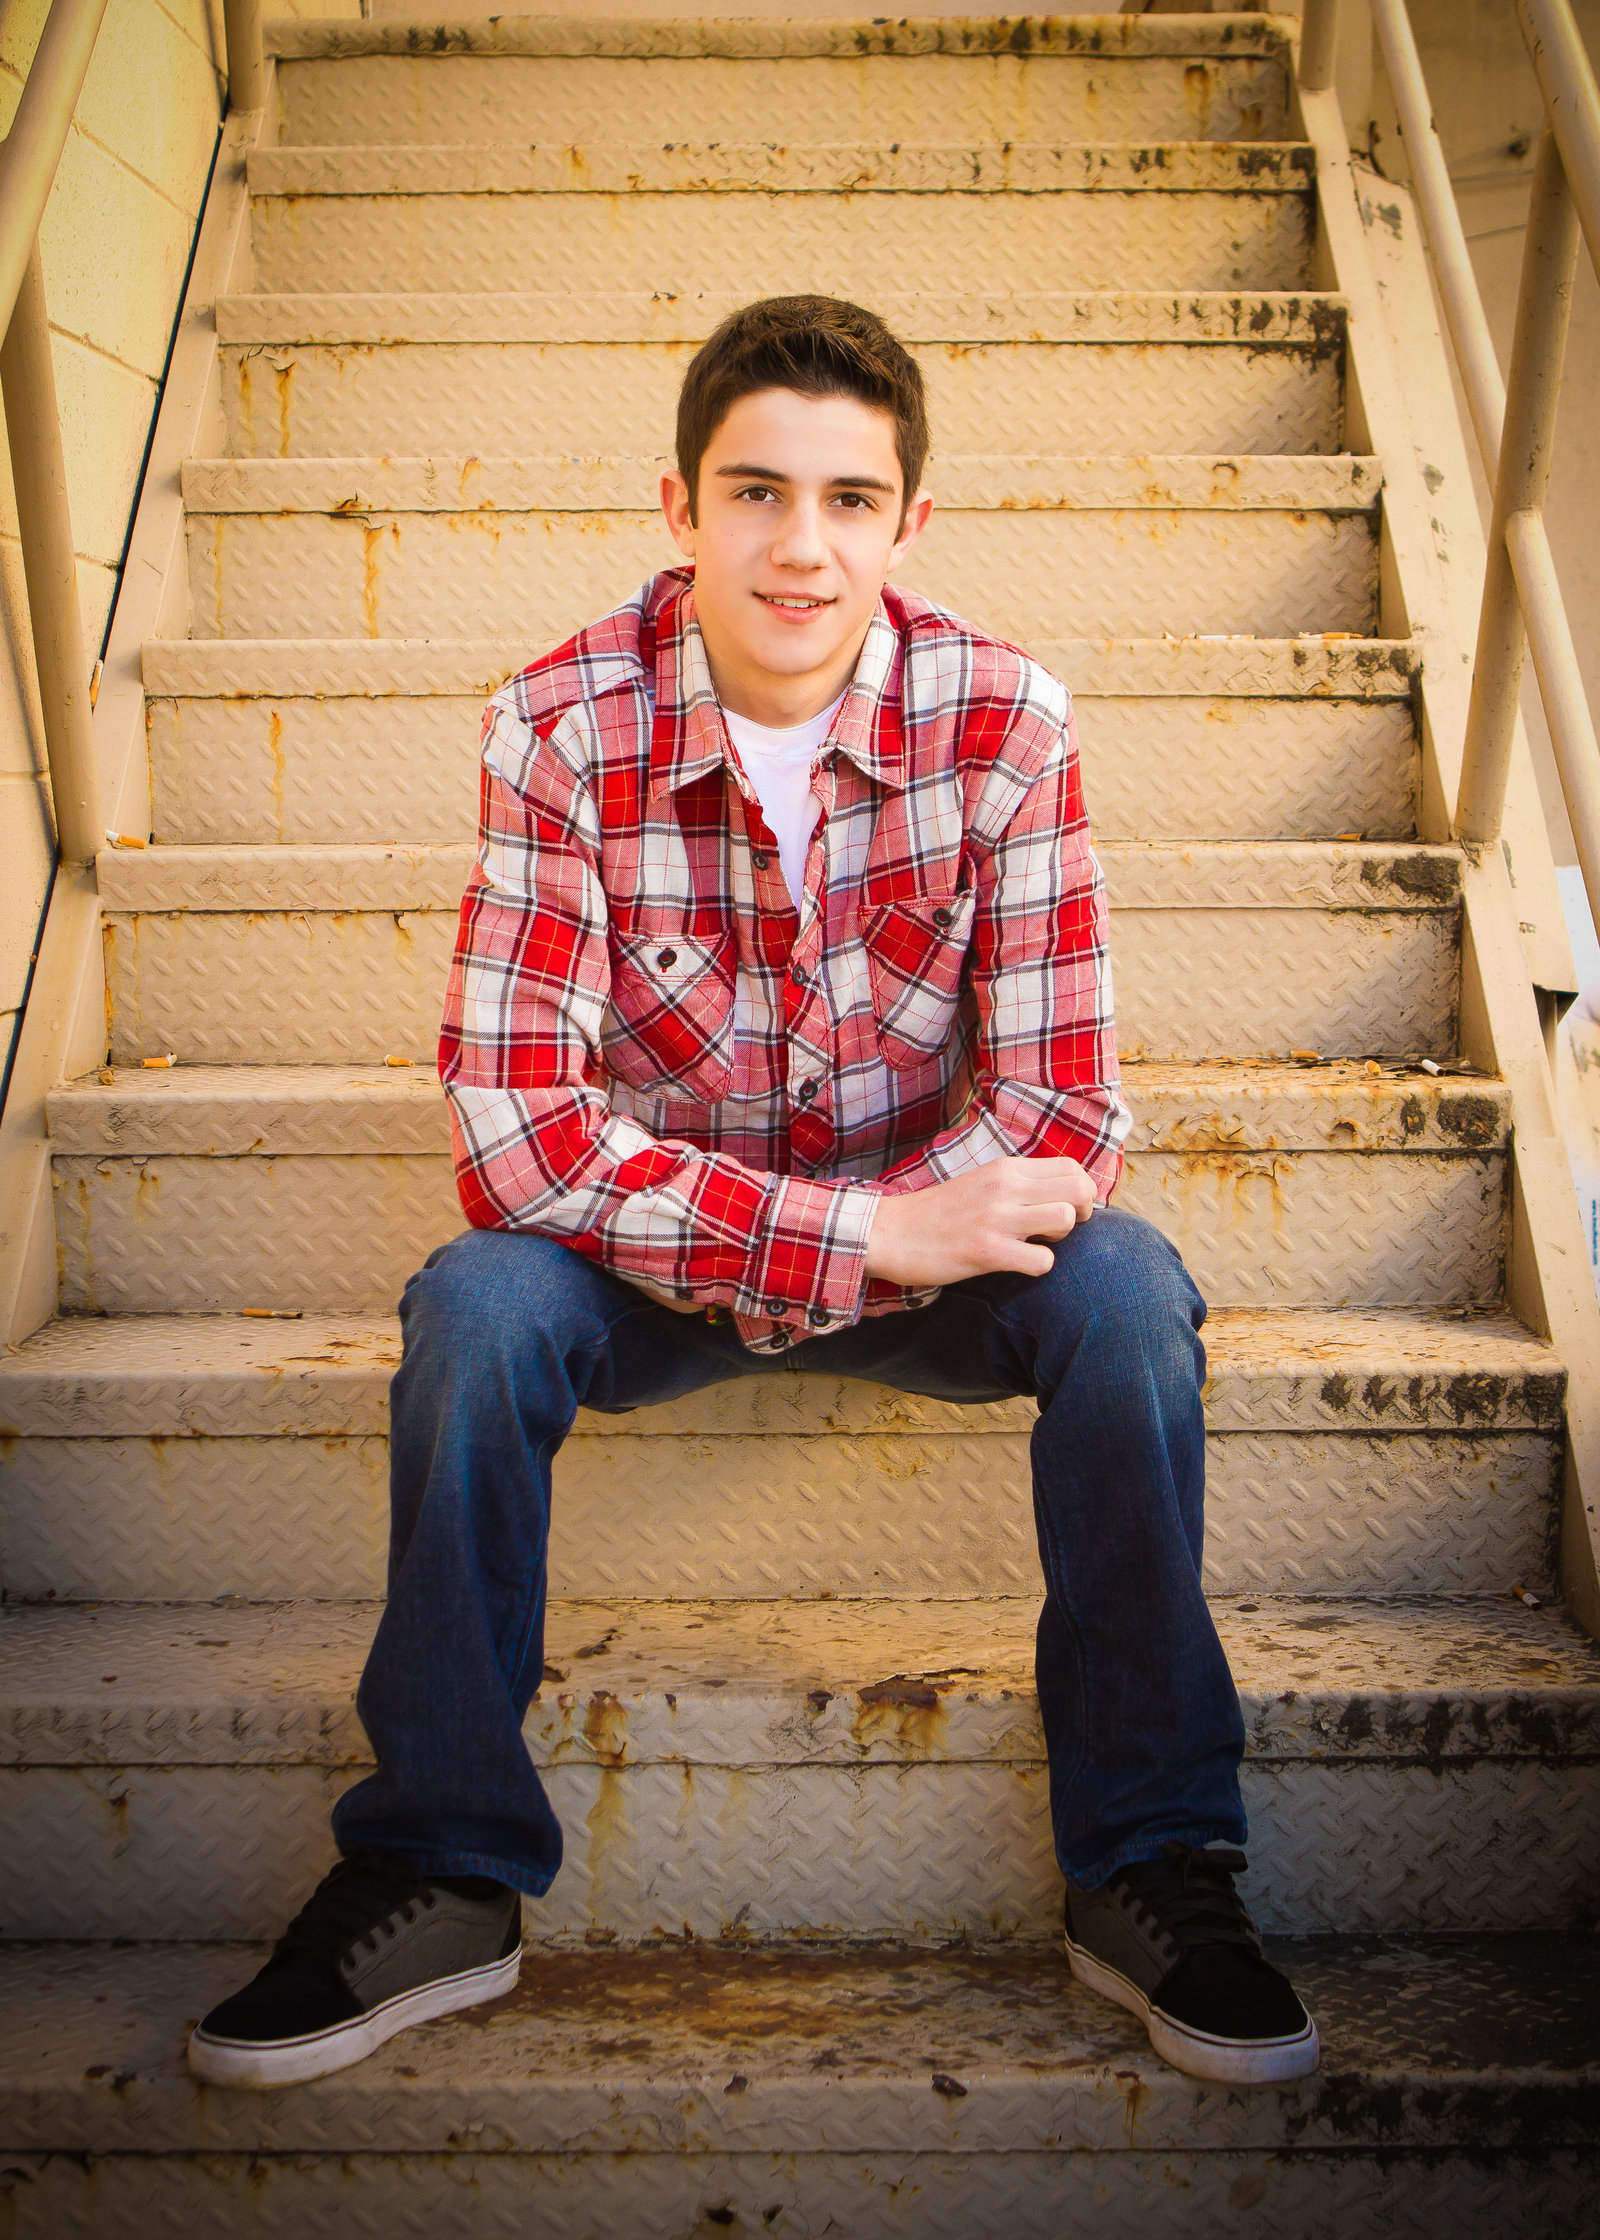 Seniors_Anthony-109